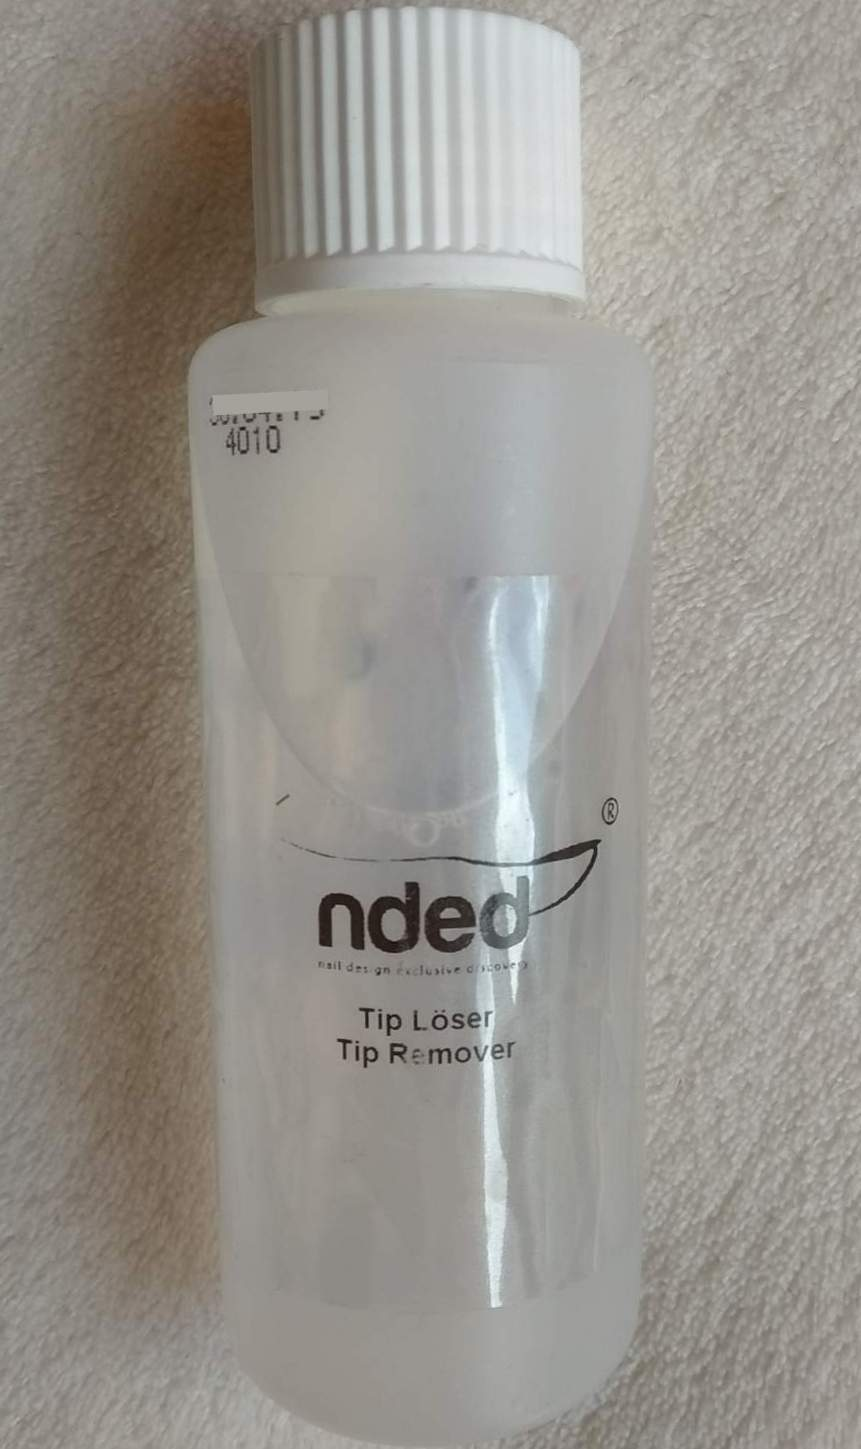 Liquido Tip Looser Nded - 100 ml